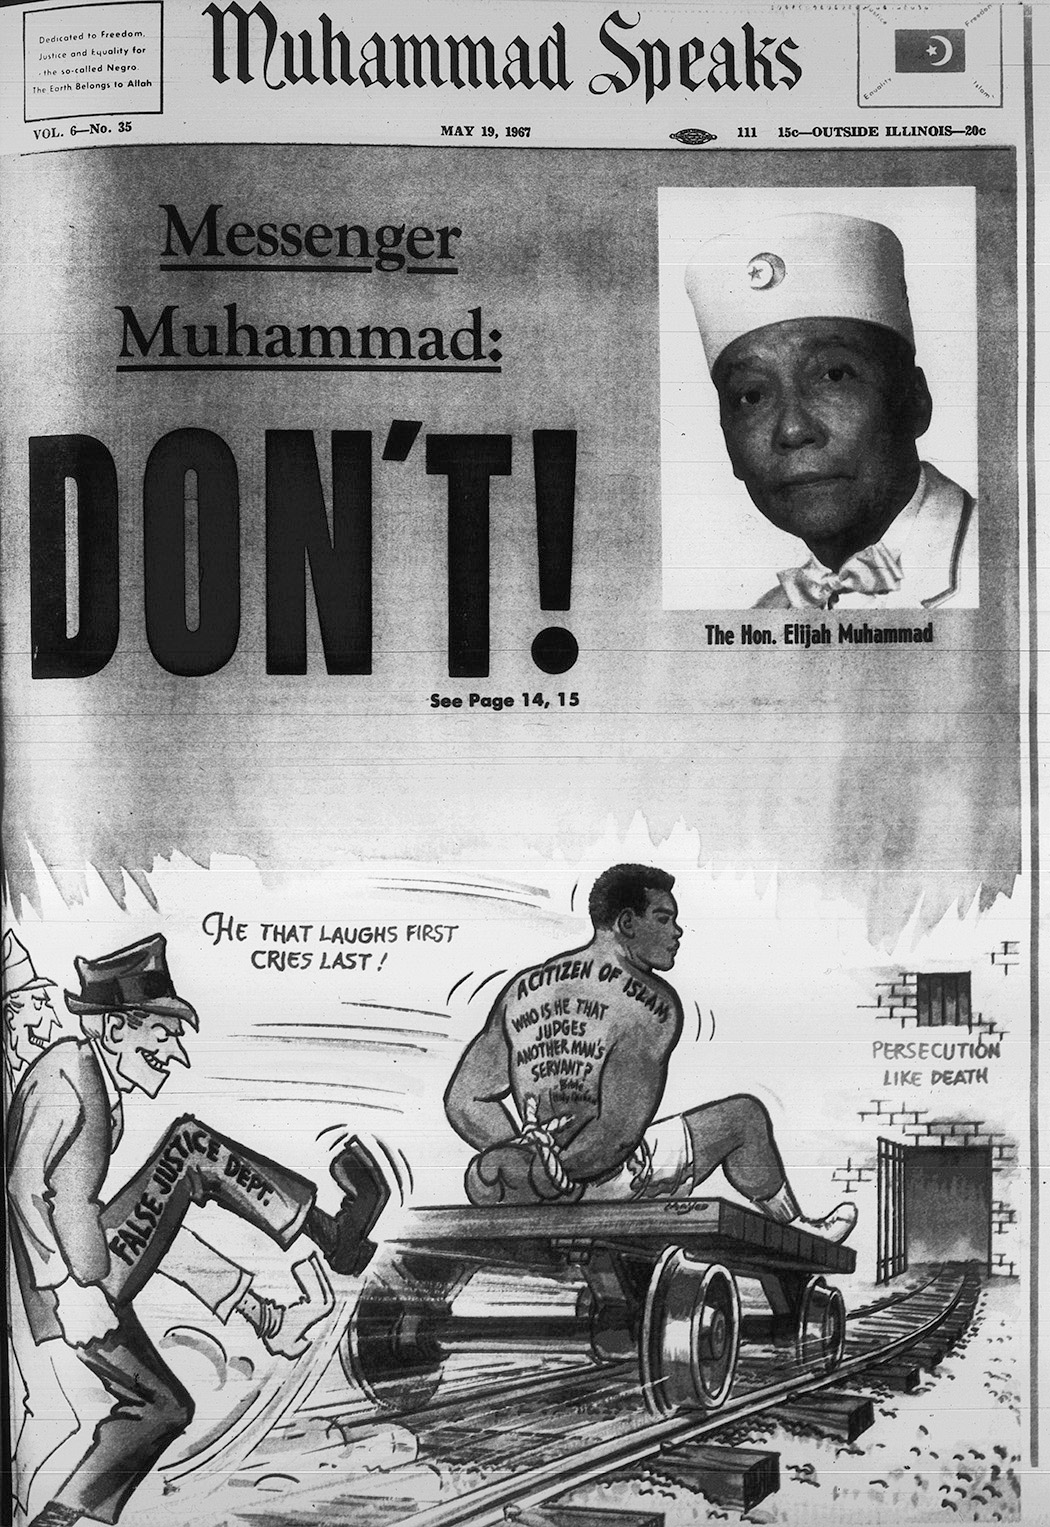 A cartoon illustrating the trial of Muhammad Ali in Volume 6, Issue 35